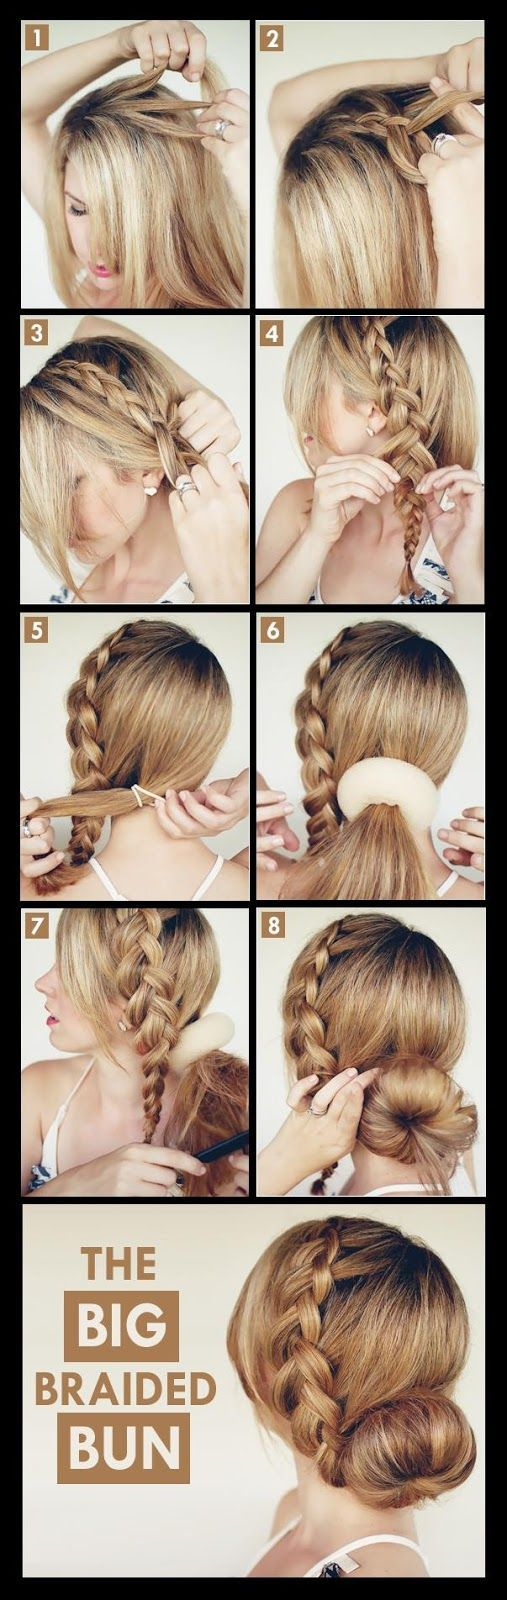 Braids: A collection of style inspiration and pinterested DIY looks!